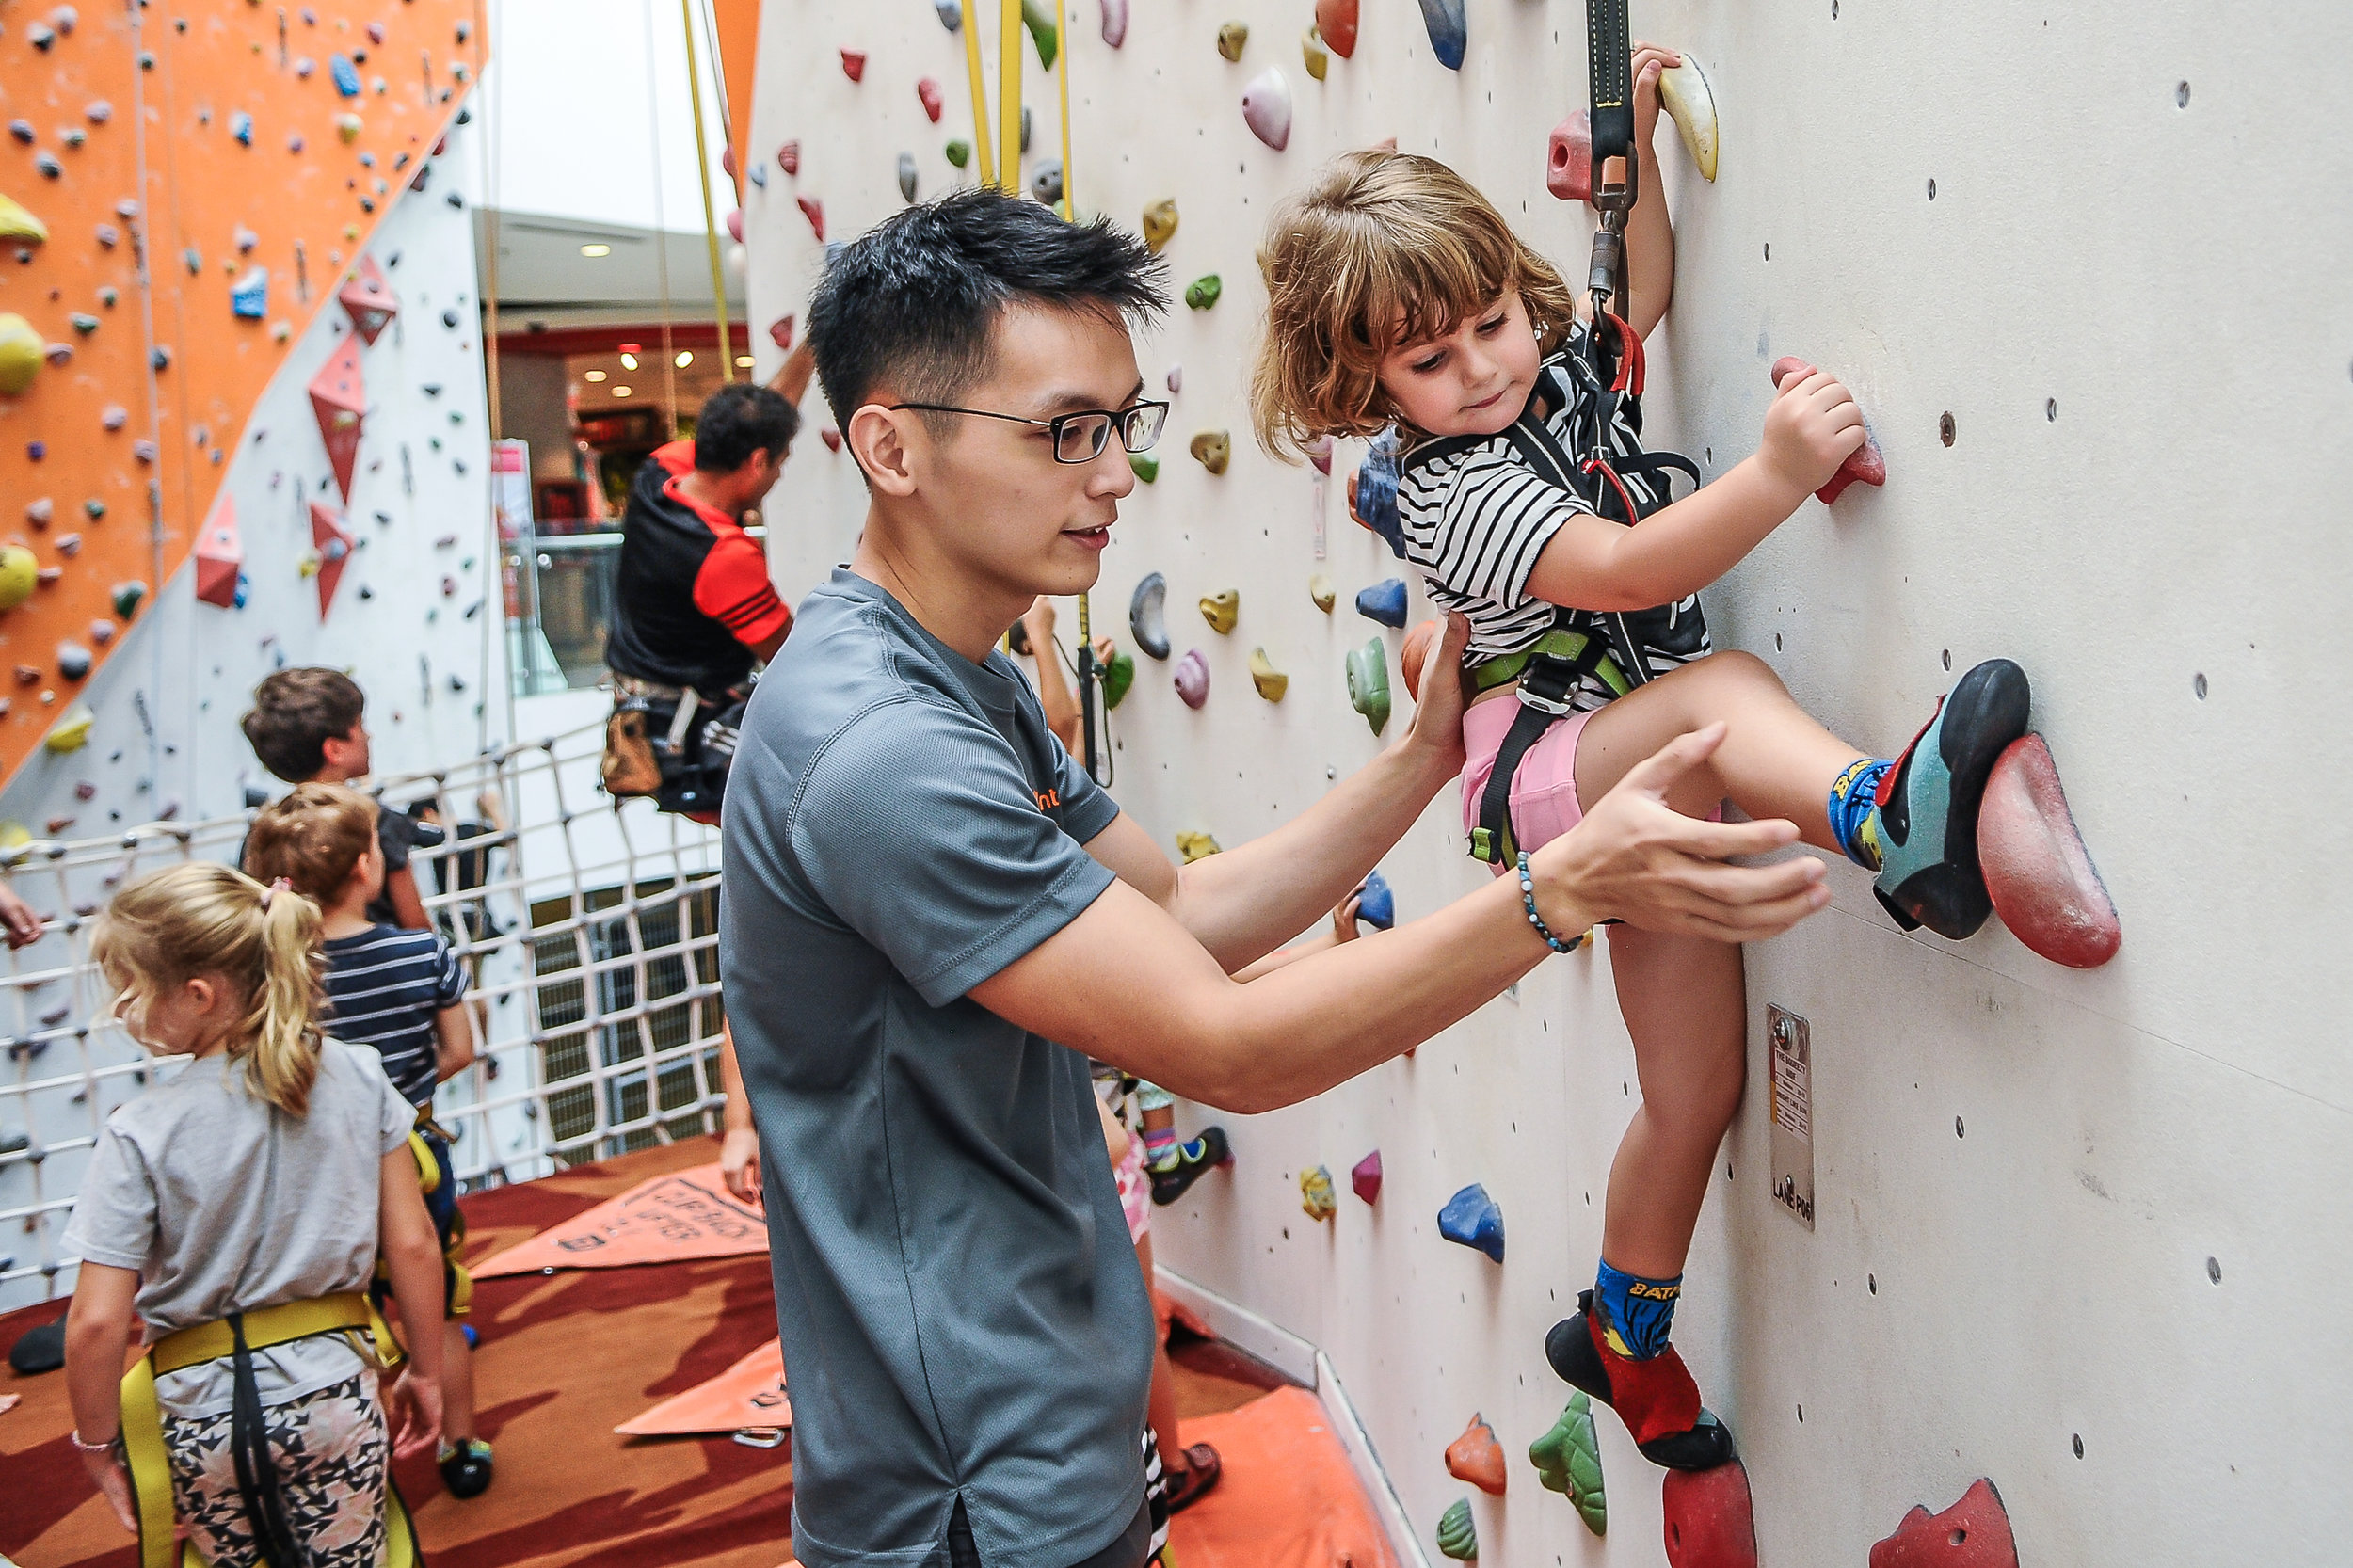 Beta Kids Instructor - Join us as a Beta Kids Instructor! If you love working with kids and helping them develop as climbers, you may be the one we are looking for!